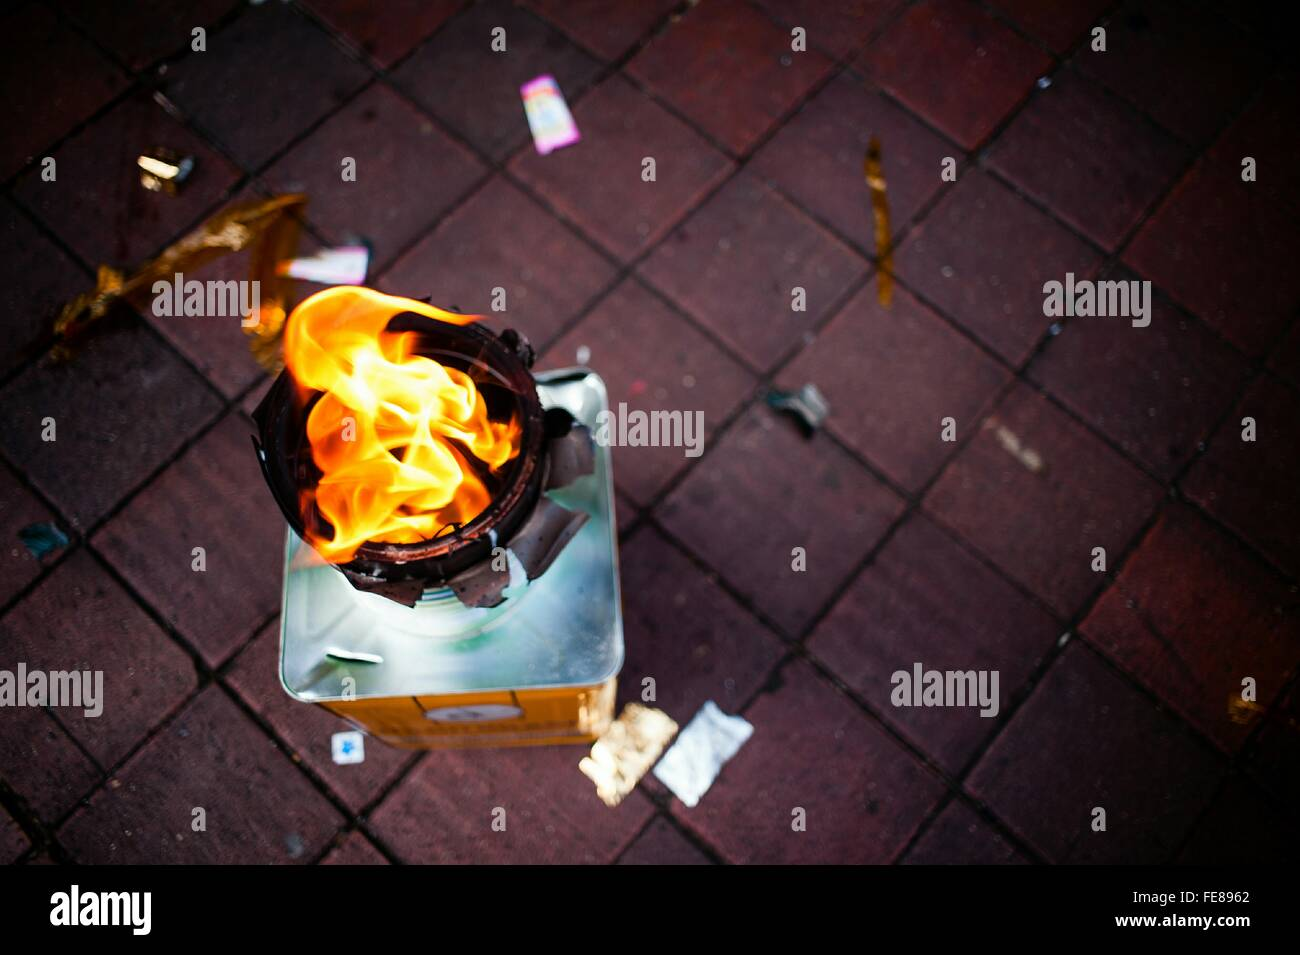 Directly Above Shot Of Open Flame - Stock Image